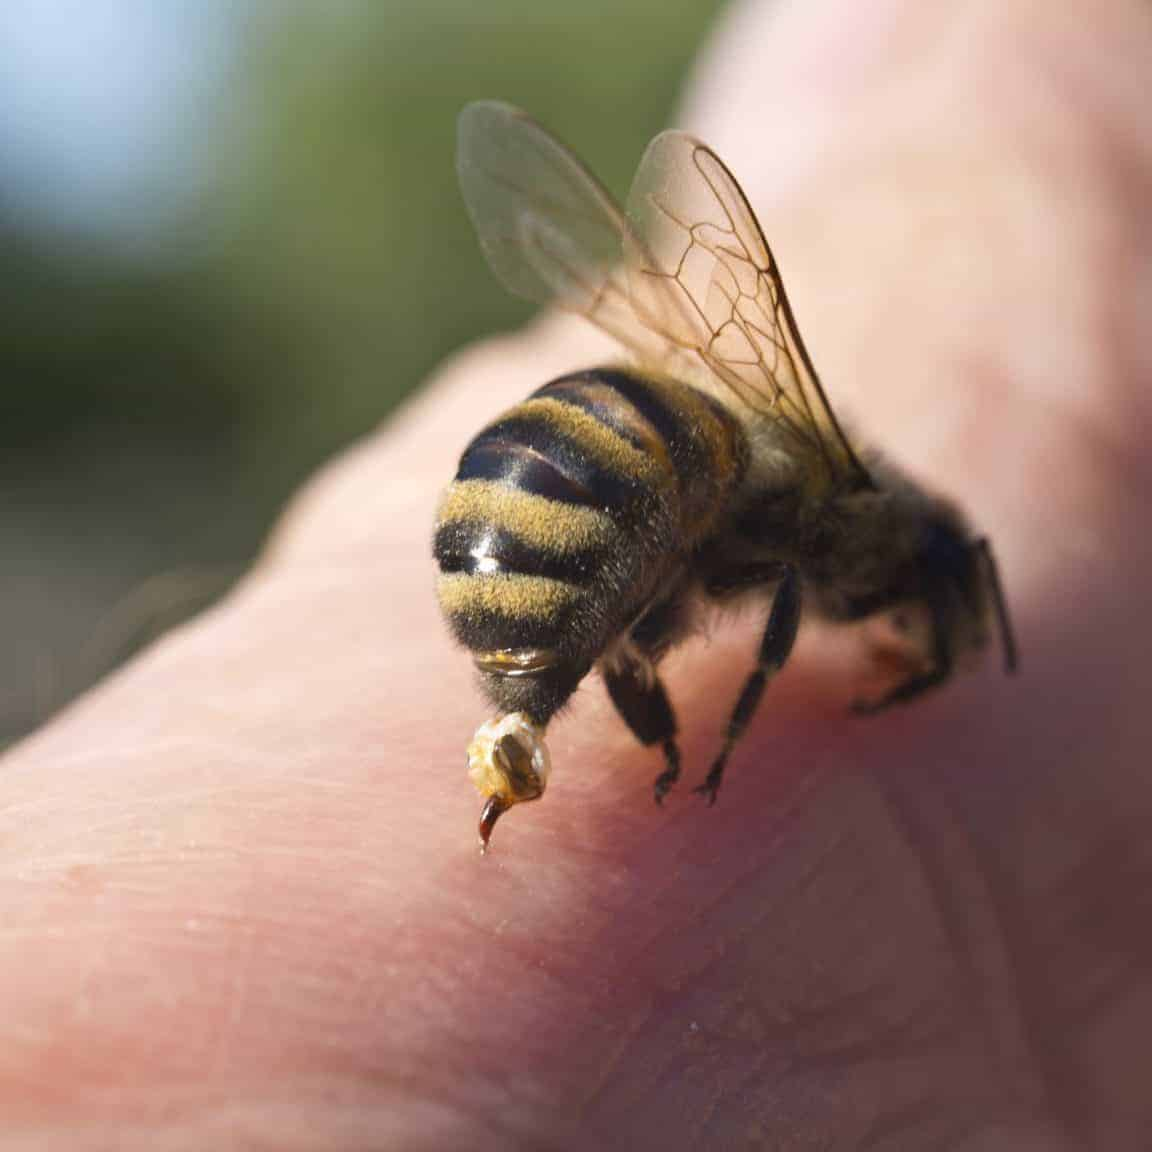 The Buzz about Bee Stings